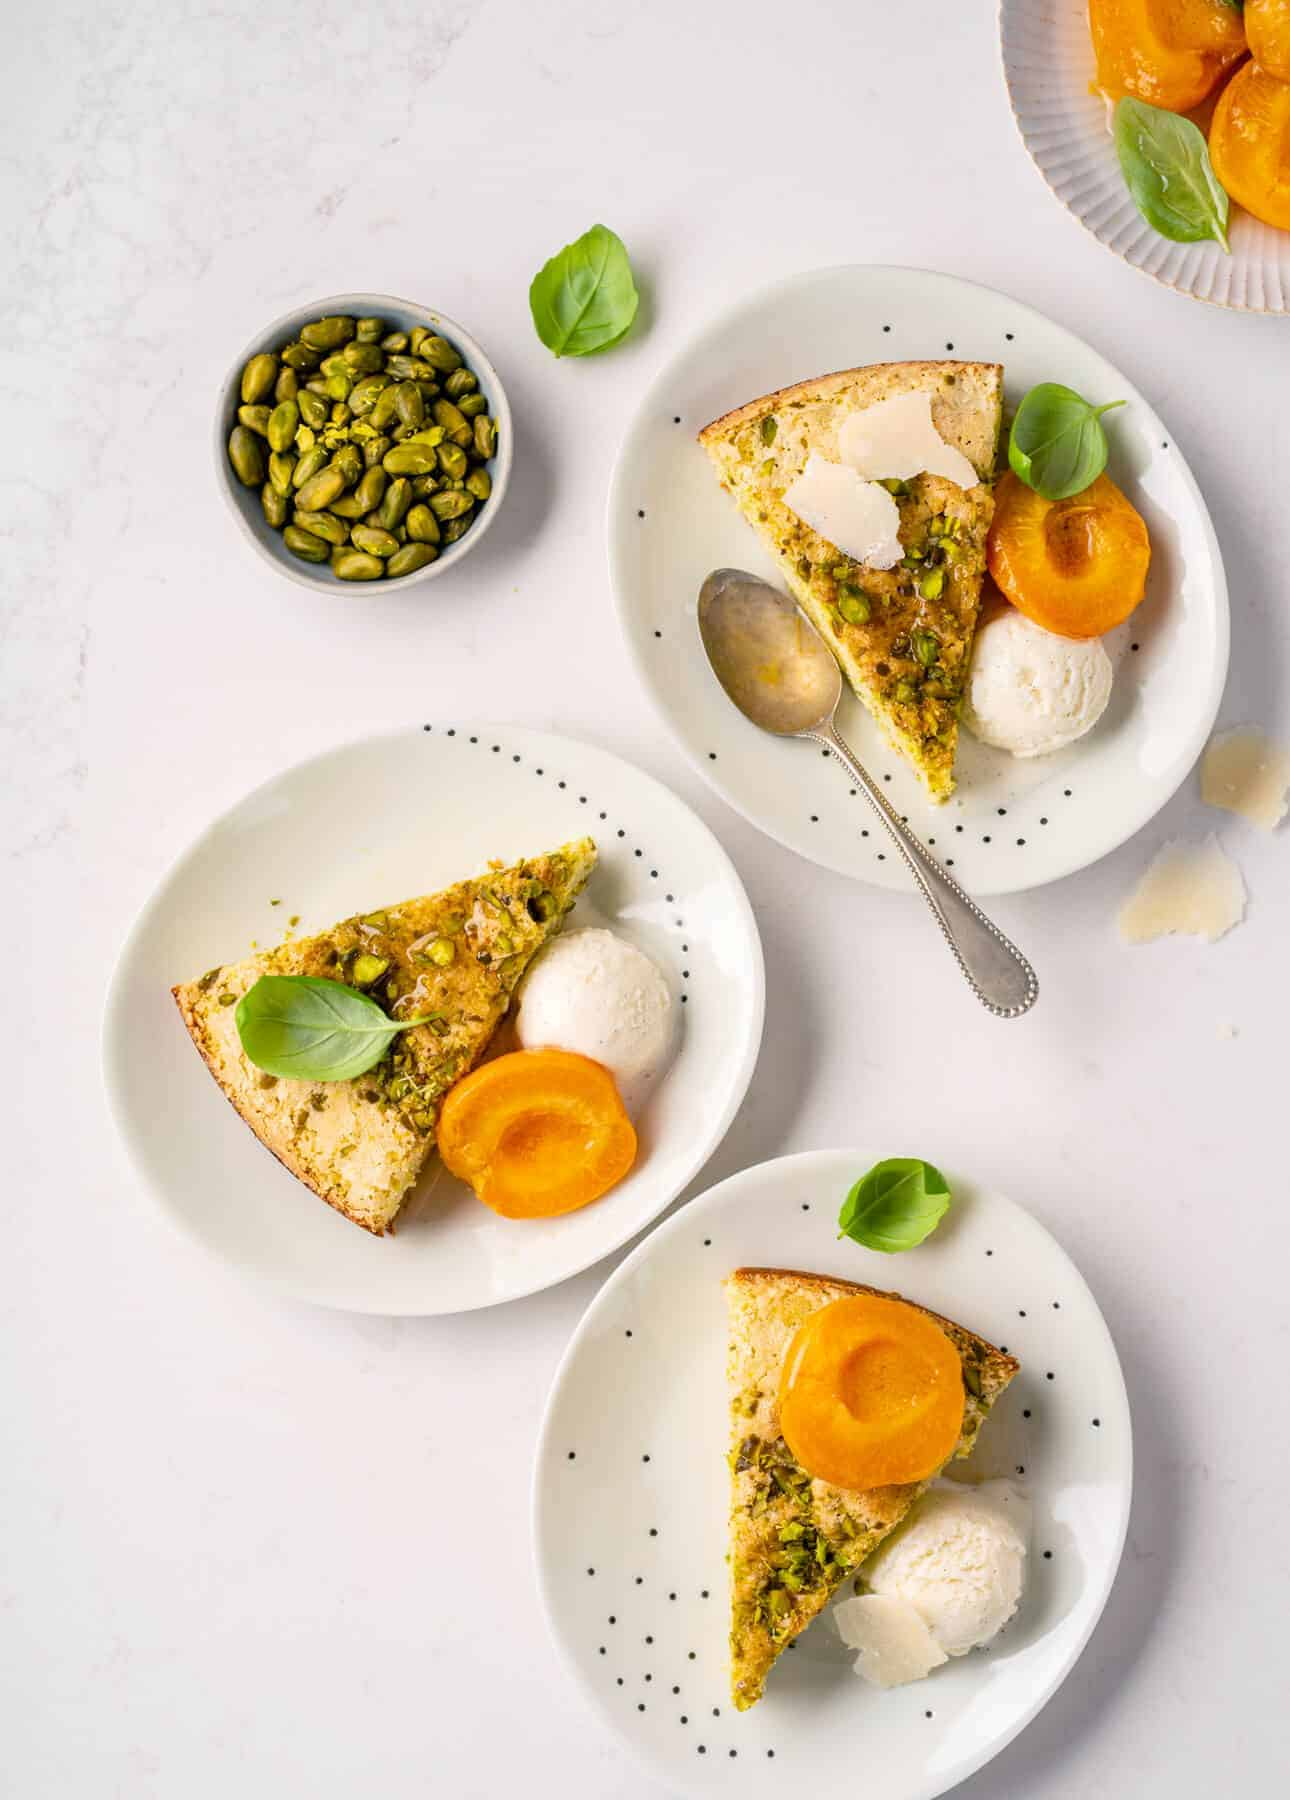 Parmesan Pistachio Cake with Basil-Infused Stewed Apricots